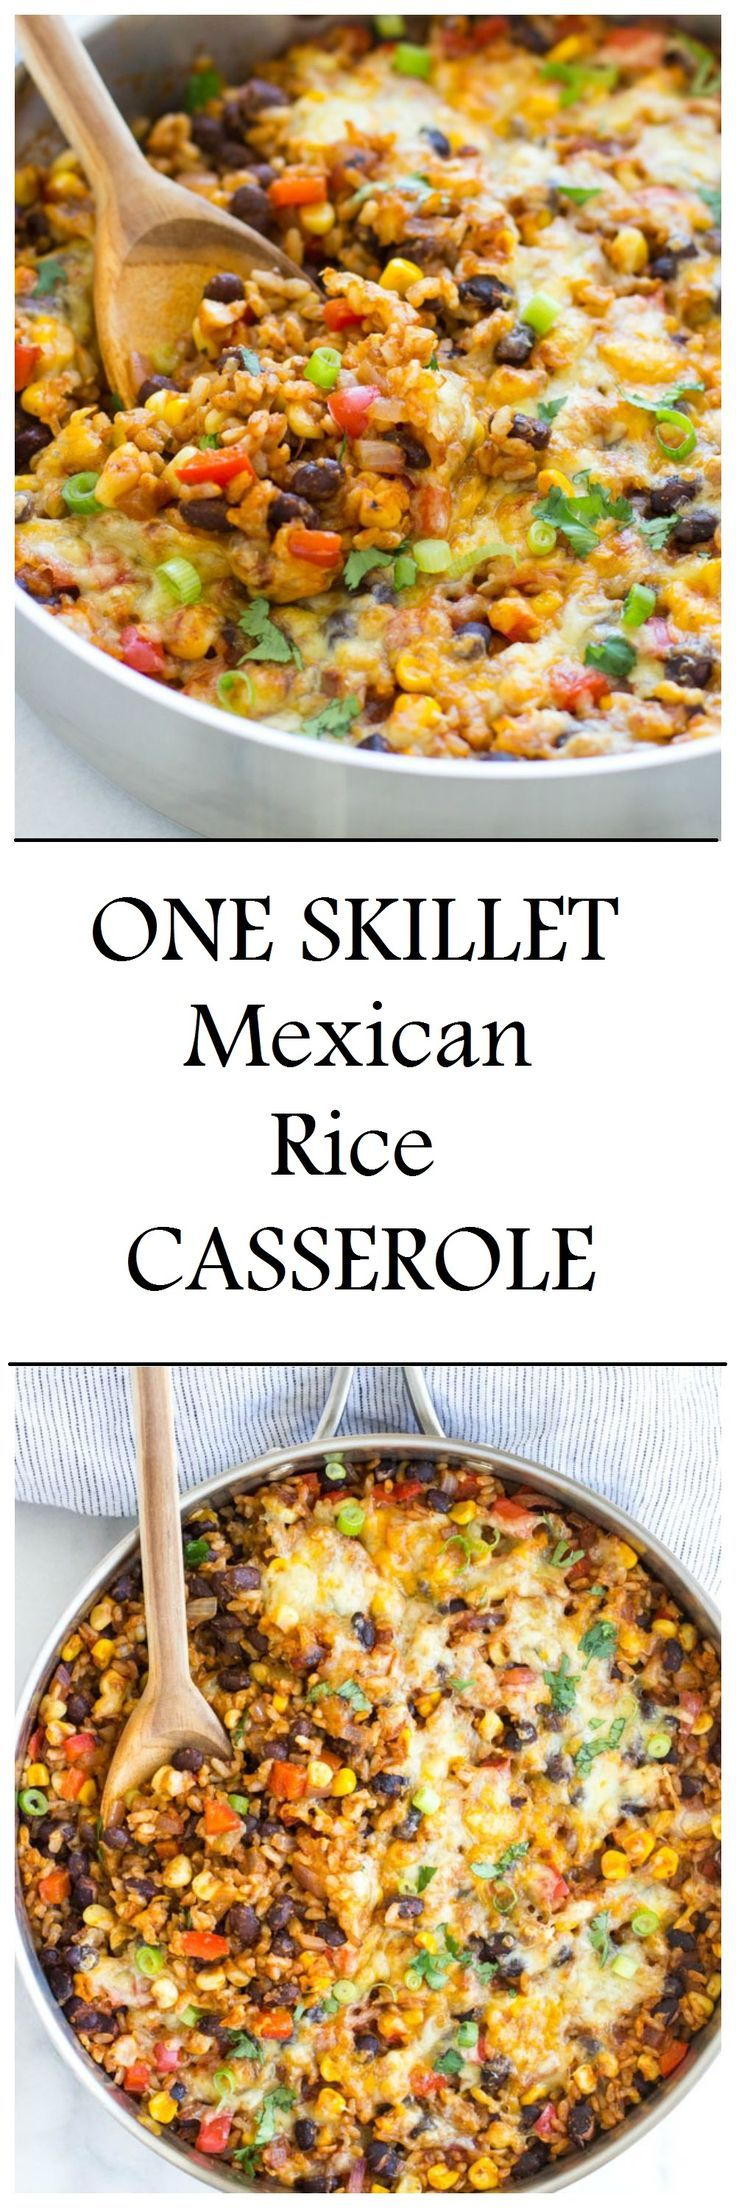 One Skillet Mexican Rice Casserole- super easy to make, almost zero clean up, and kid approved!